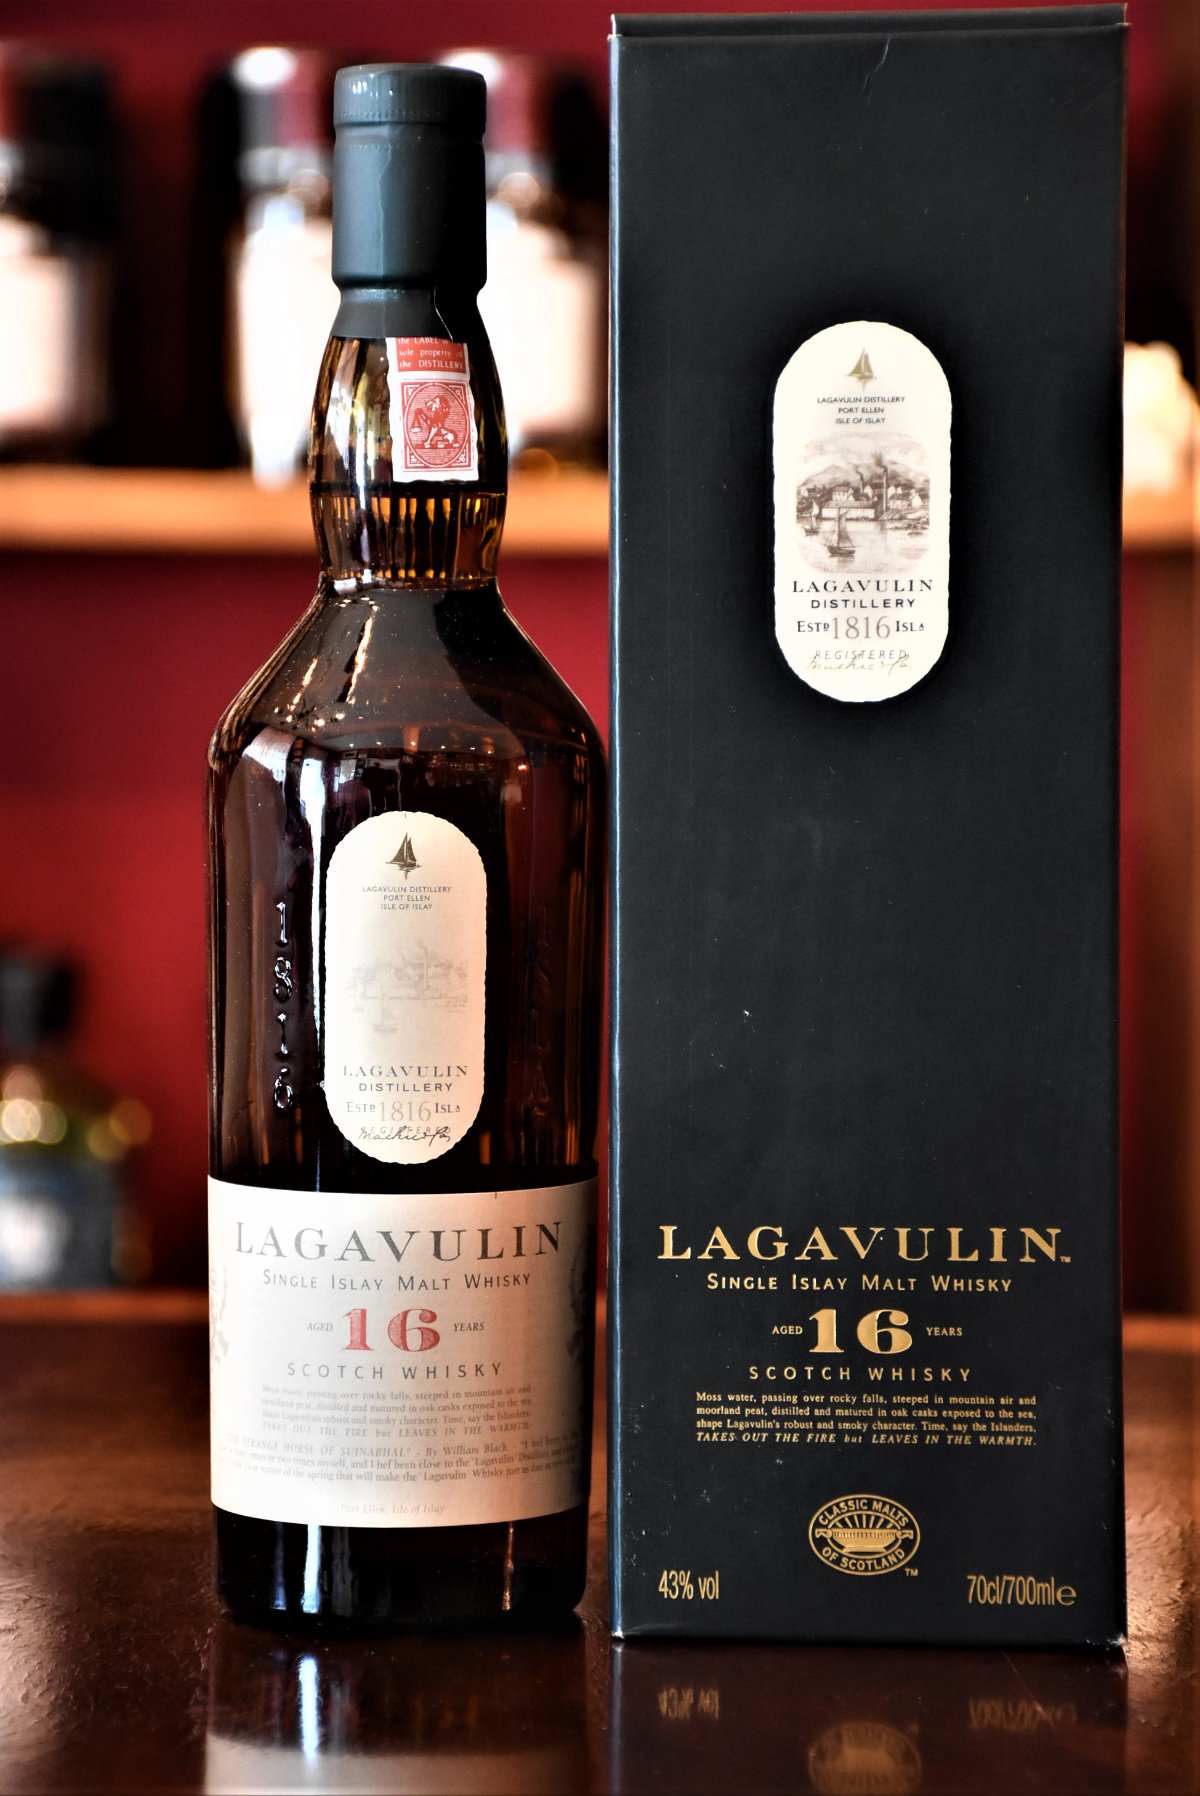 Lagavulin 16 y.o. - Bottled latest 2002, 43% Alc.Vol.